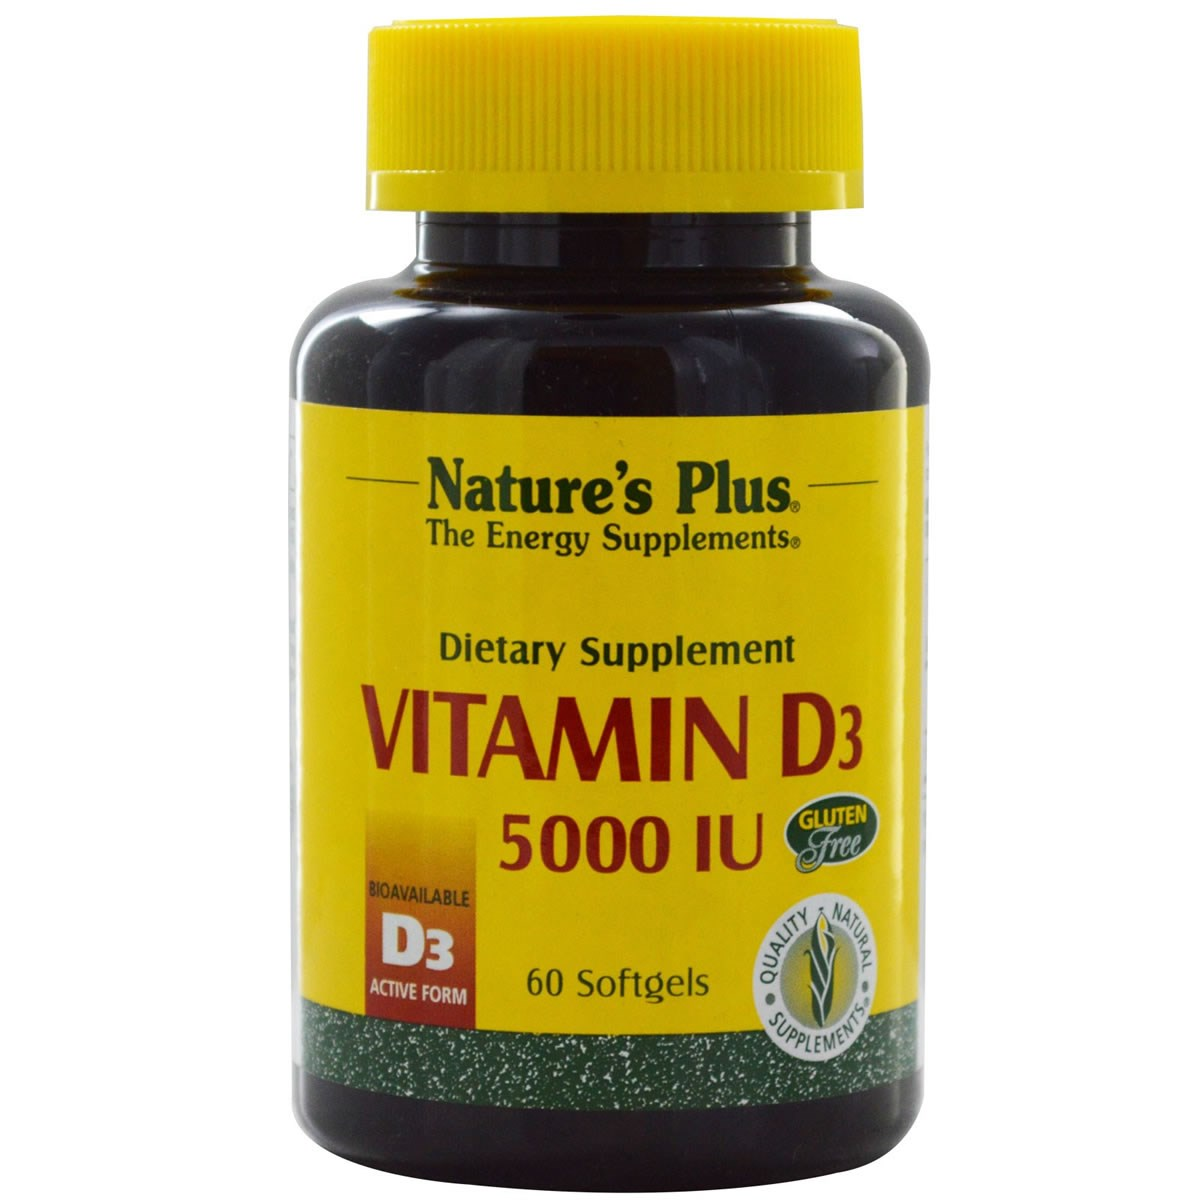 Natures Plus Vitamin D3 5000 IU Softgels